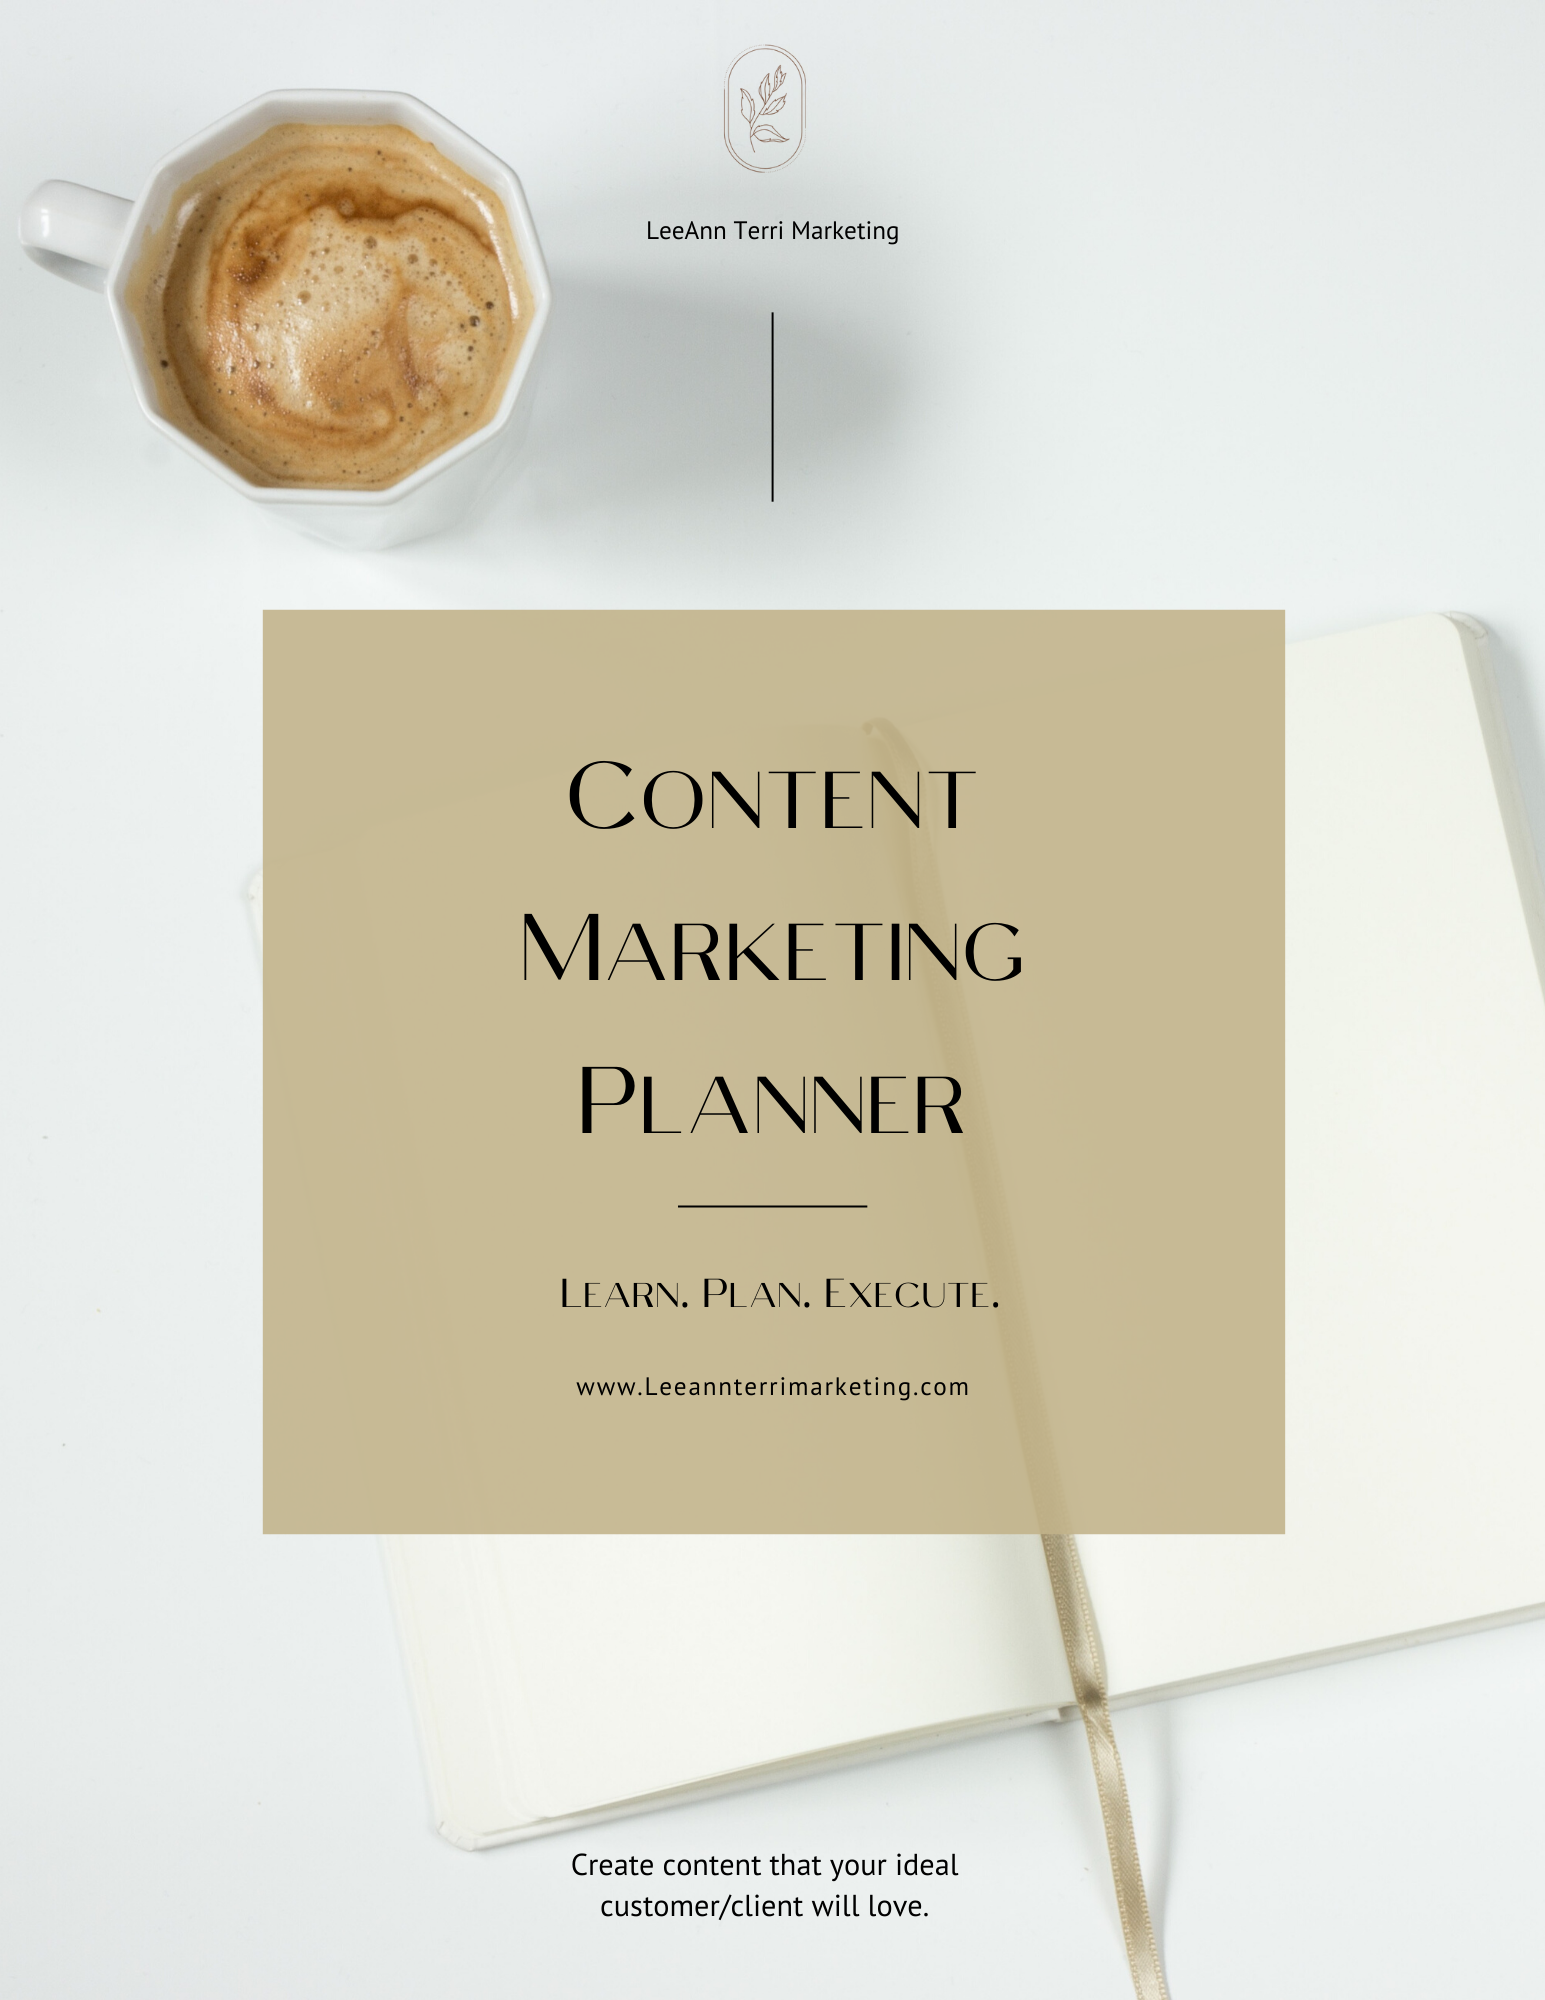 LeeAnn Terri Marketing Content planner